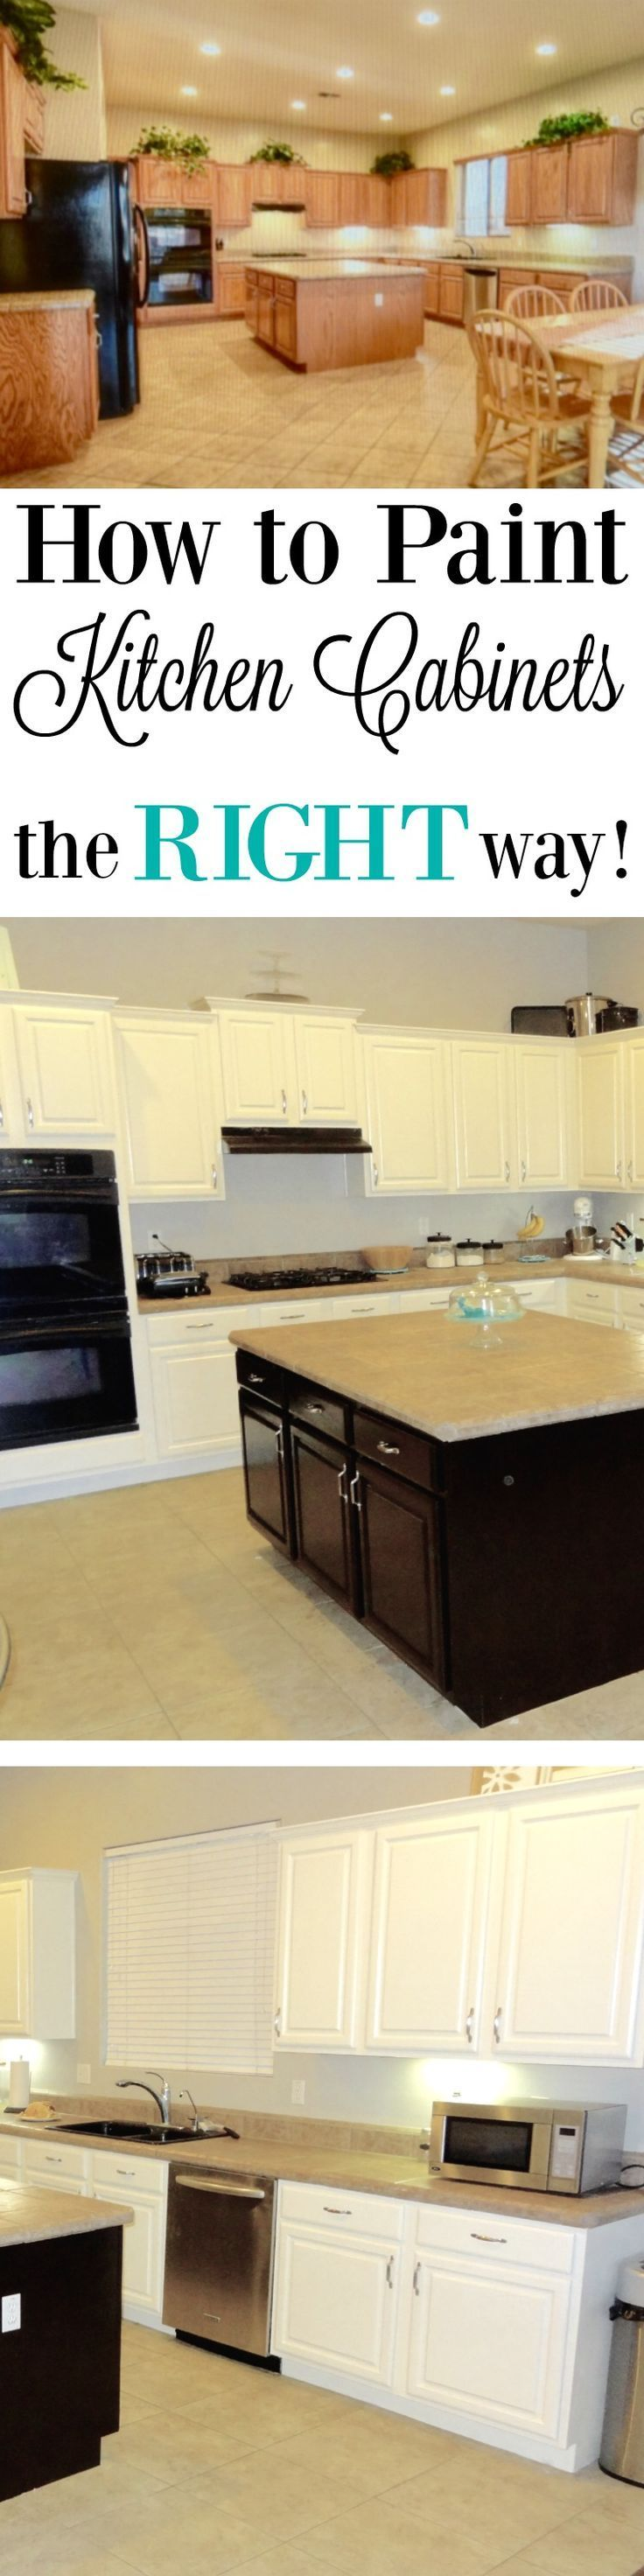 how to paint kitchen cabinets white - Best Way To Paint Cabinets